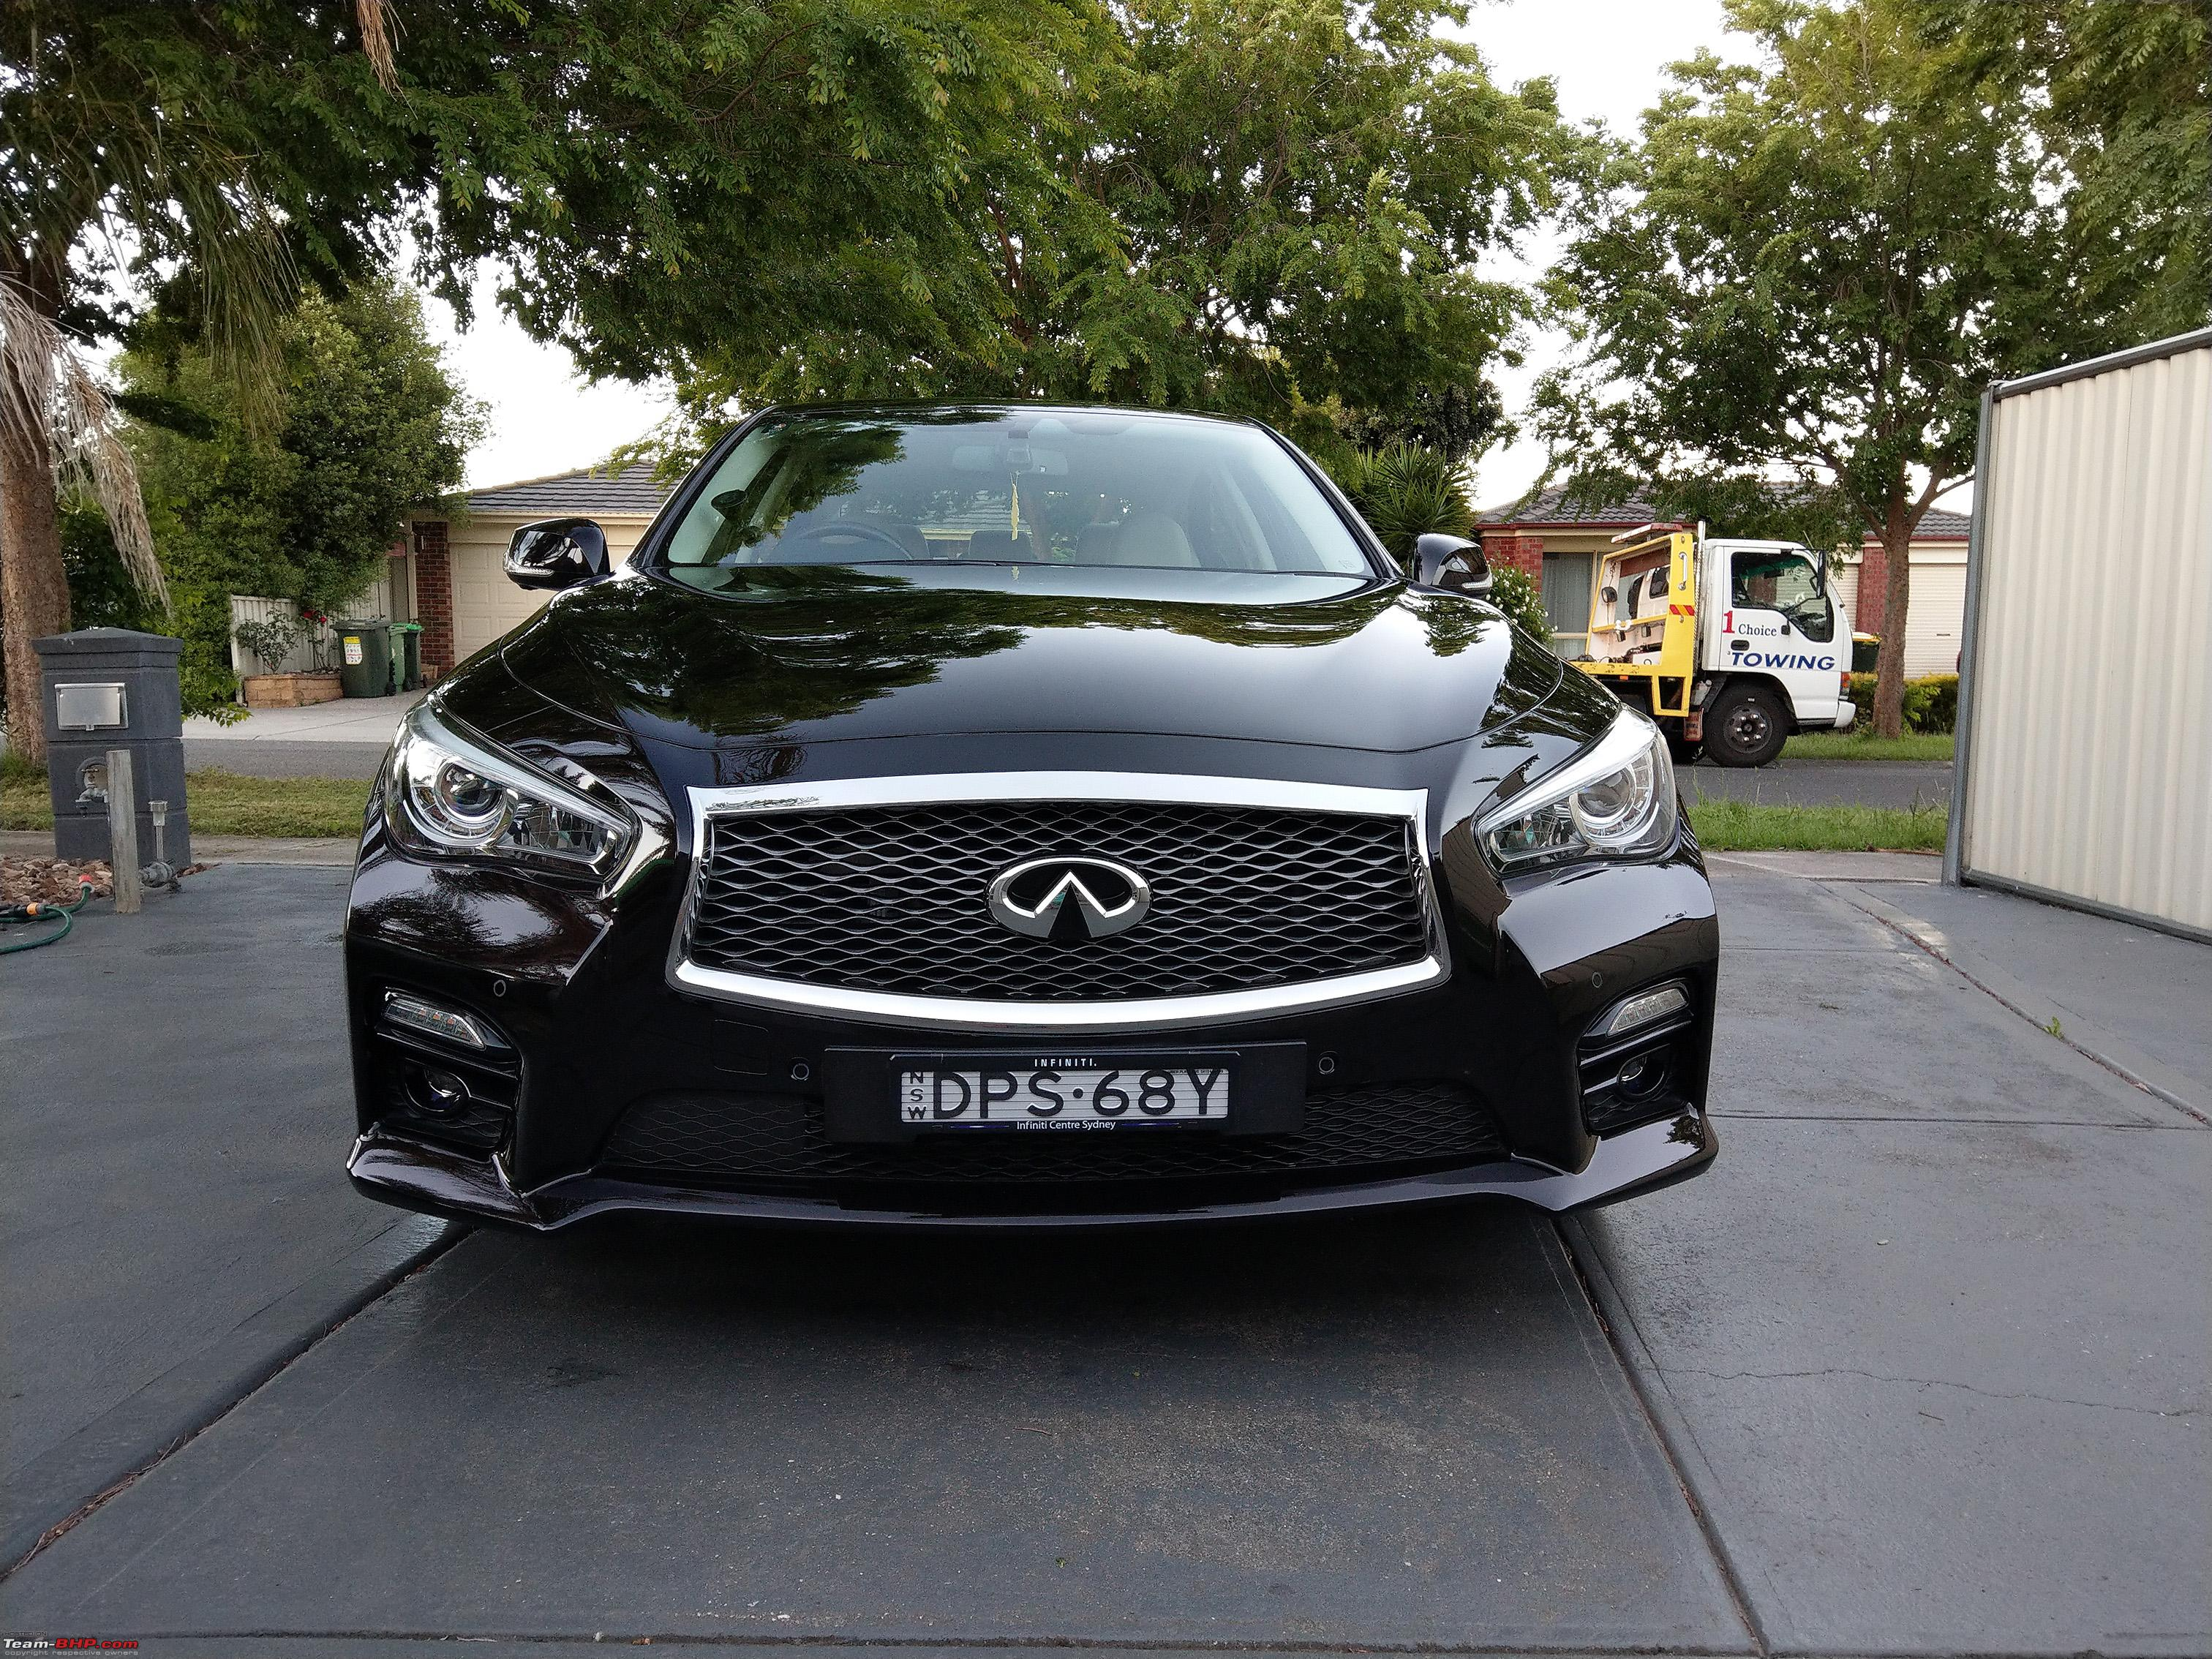 Shadow, My 2016 Infiniti Q50 - The first one on Team-BHP